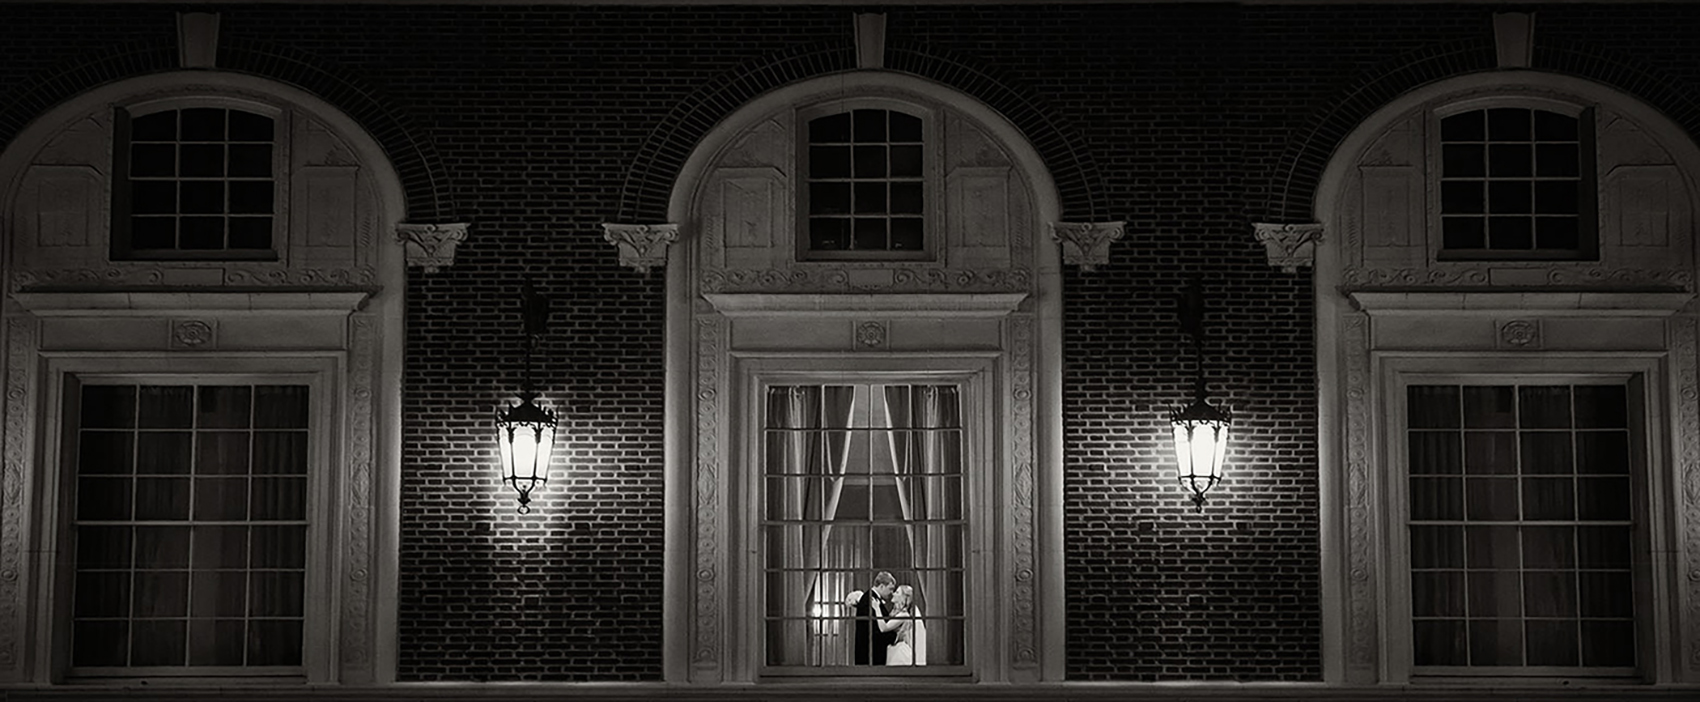 An image captured from outside the Westin Poinsett Hotel in Greenville, SC, peers into the Poinsett Ballroom to see a husband and wife embrace.